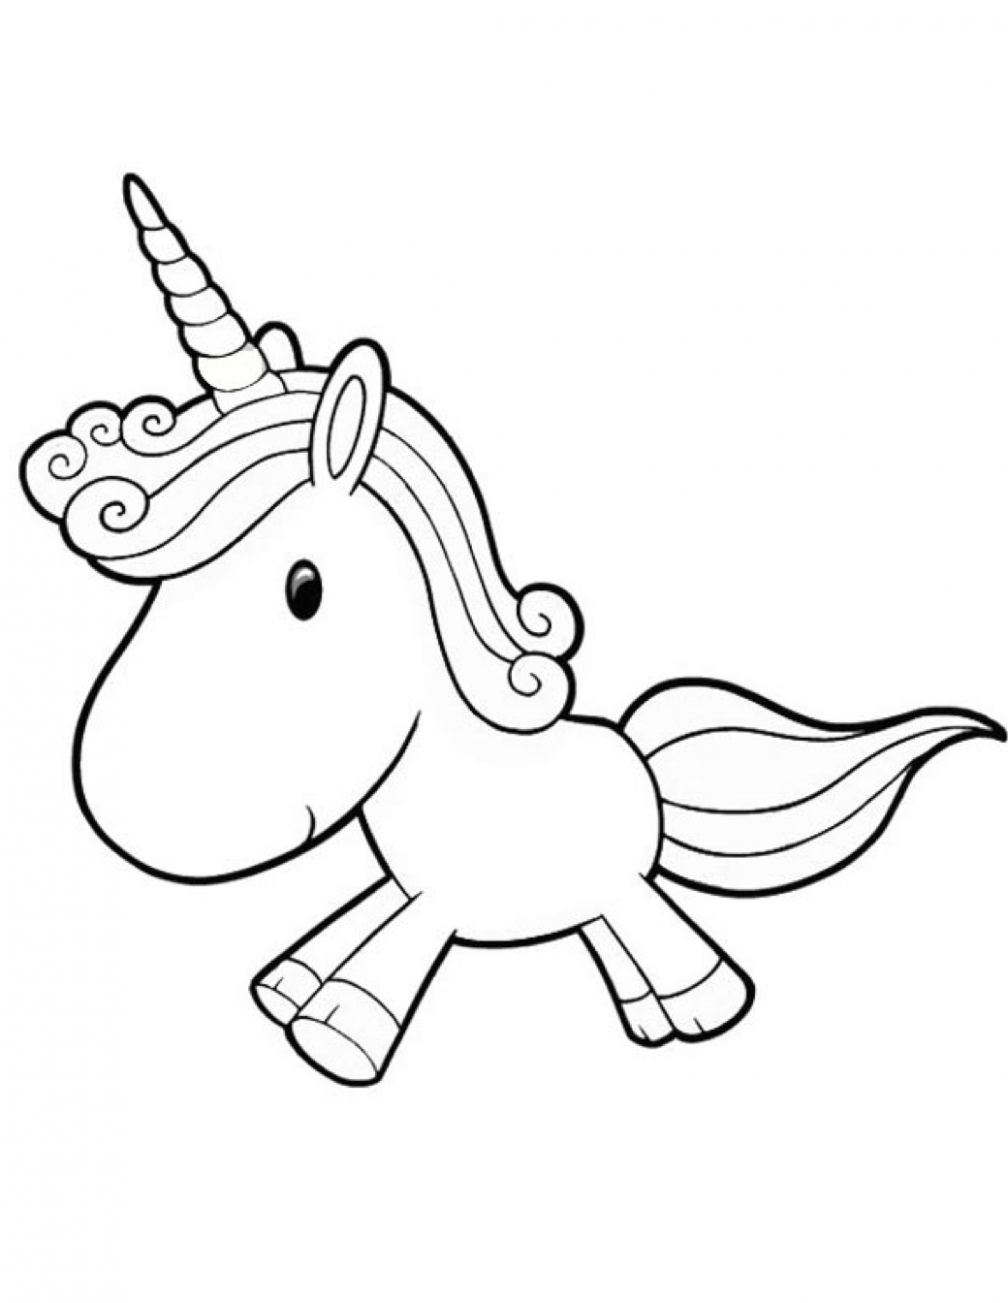 Cartoon Unicorn Coloring Page coloring page  - unicorn coloring book